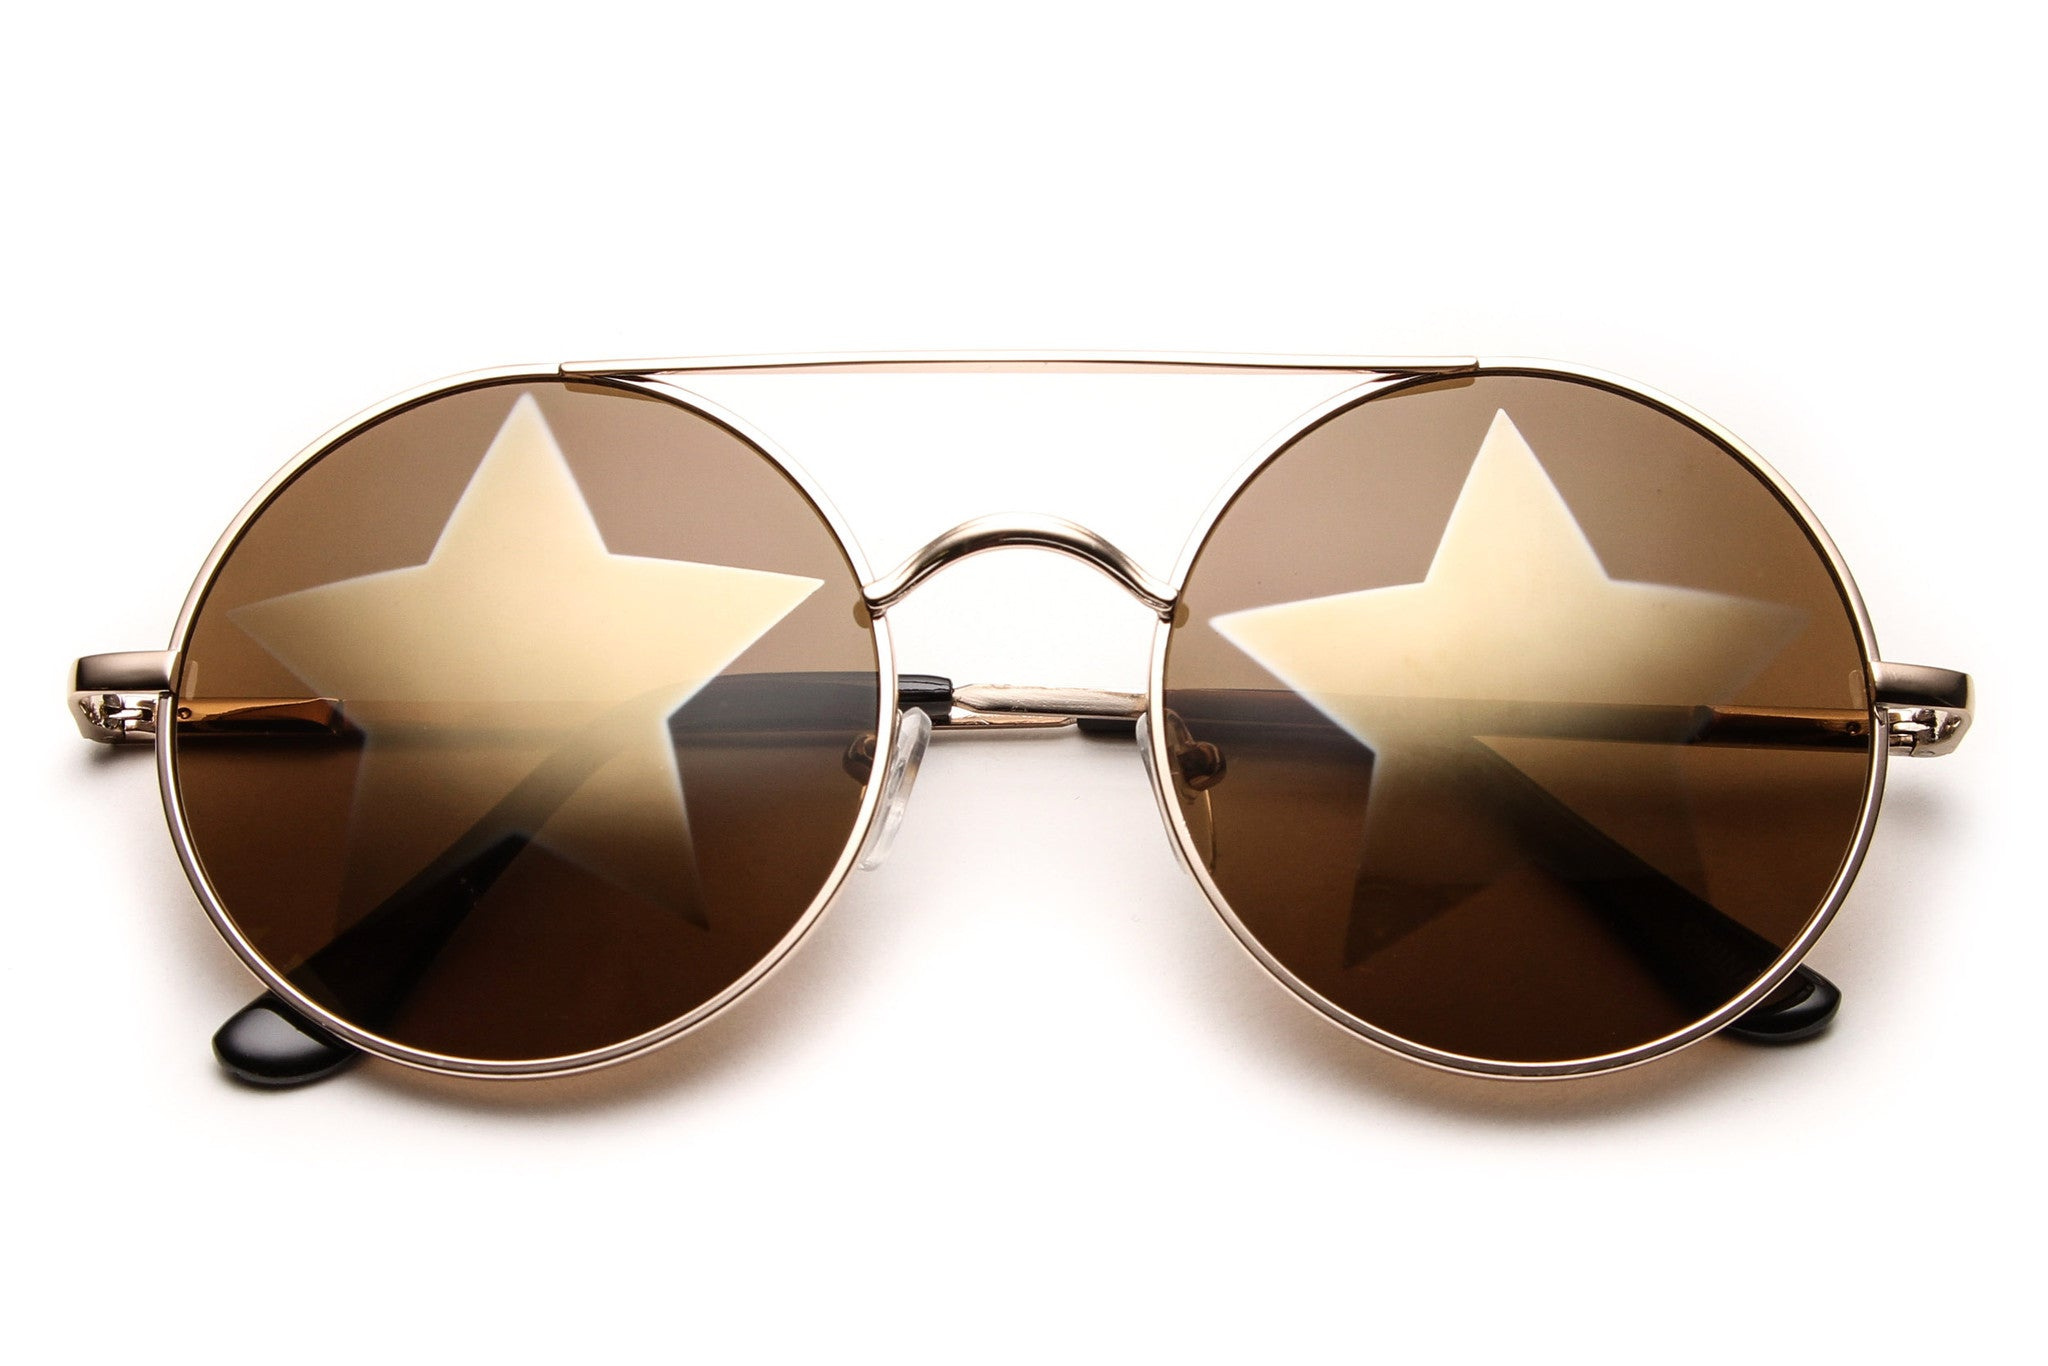 Leah Starstruck Round Metal Frame Sunglasses